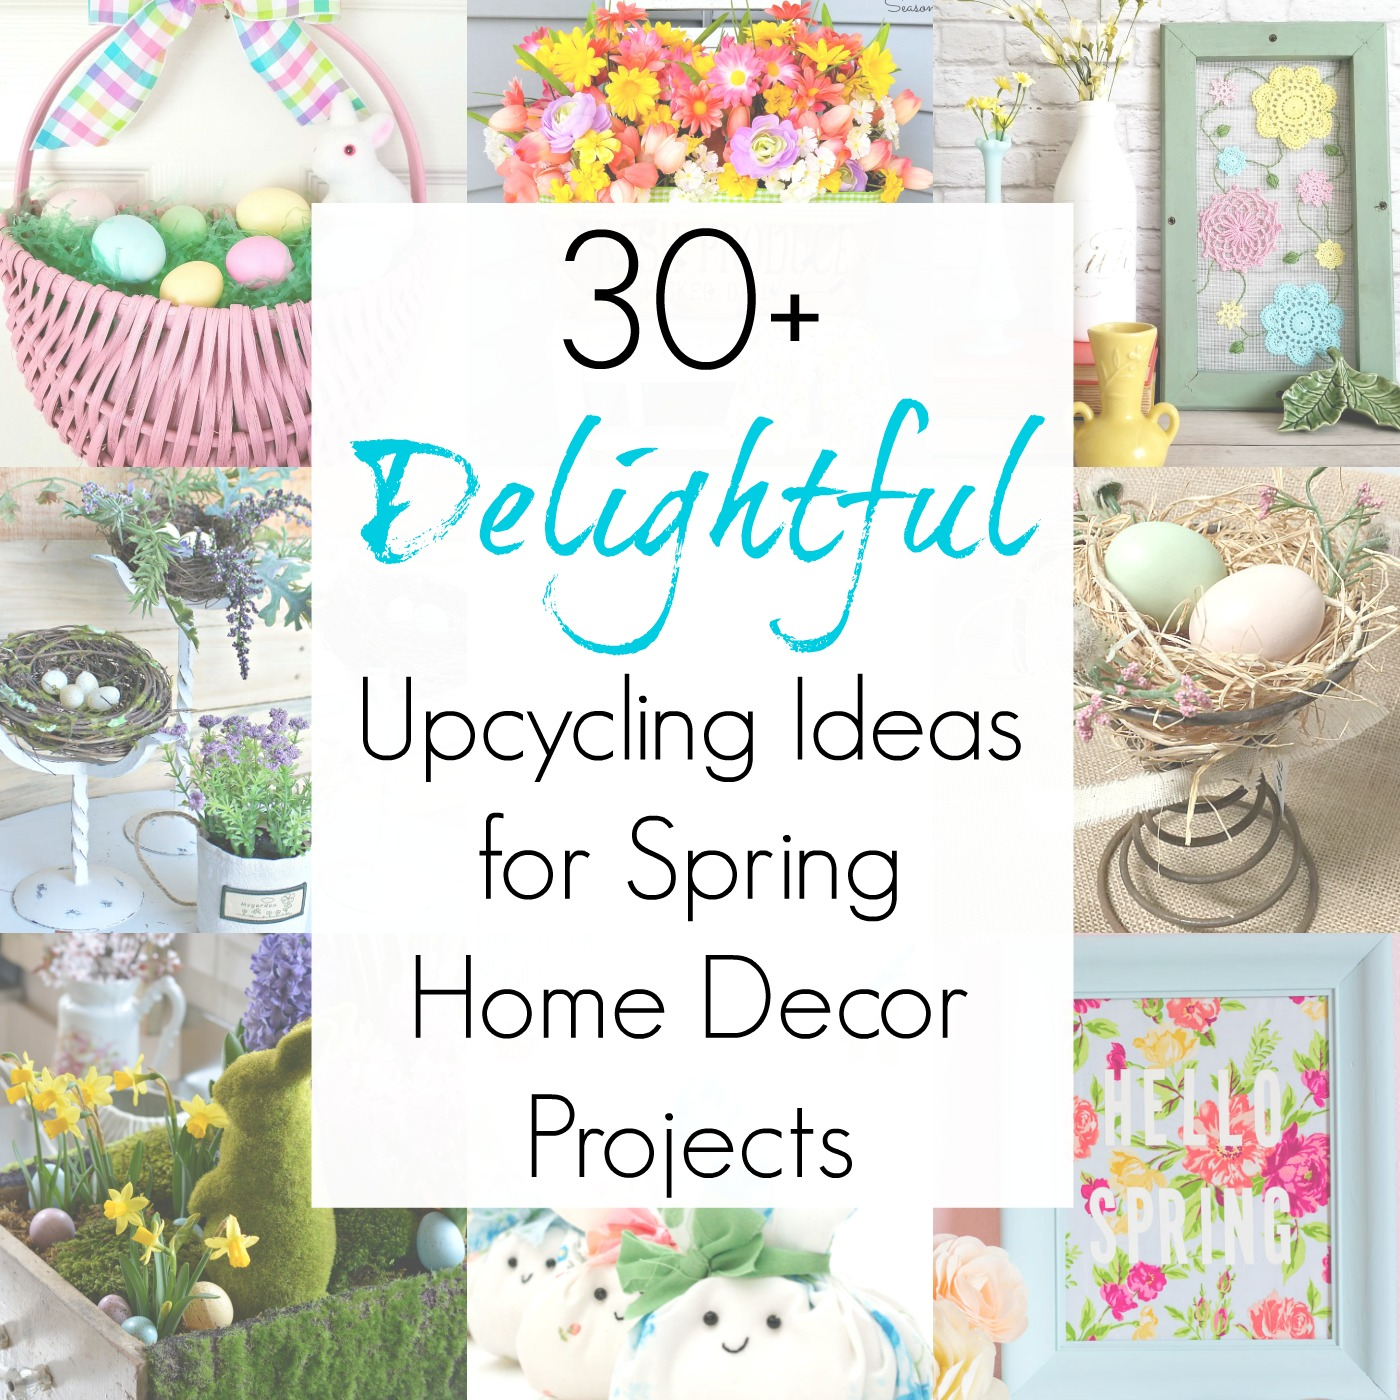 30+ Upcycling Ideas for Spring Home Decor and Spring Crafts